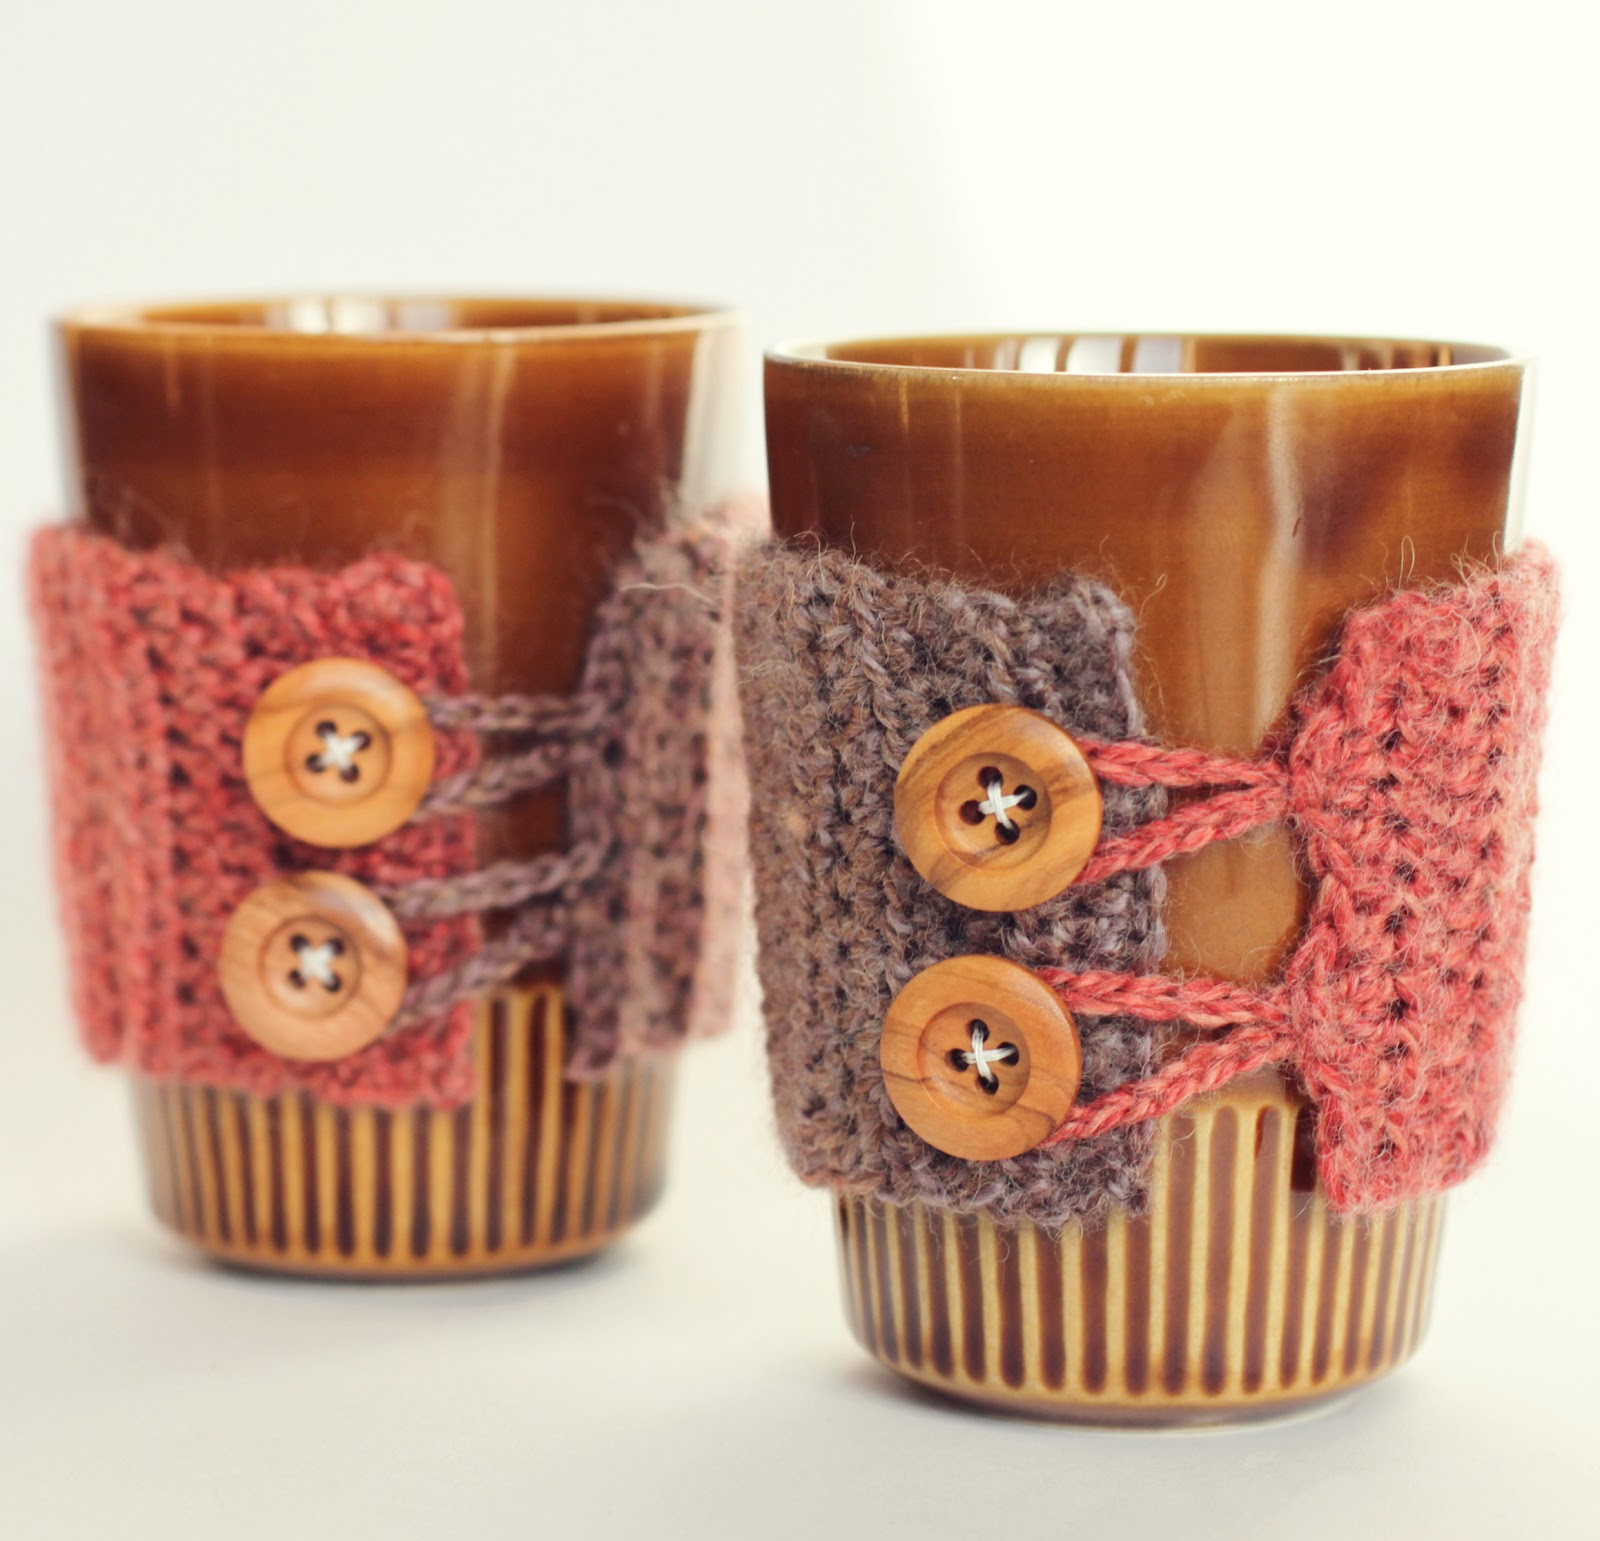 Crochet Coffee Cup Cozy Lovely L♥valizious Mug Cozy Tutorial Of Crochet Coffee Cup Cozy Luxury Pdf Crochet Pattern Coffee Mug Cozy with button by